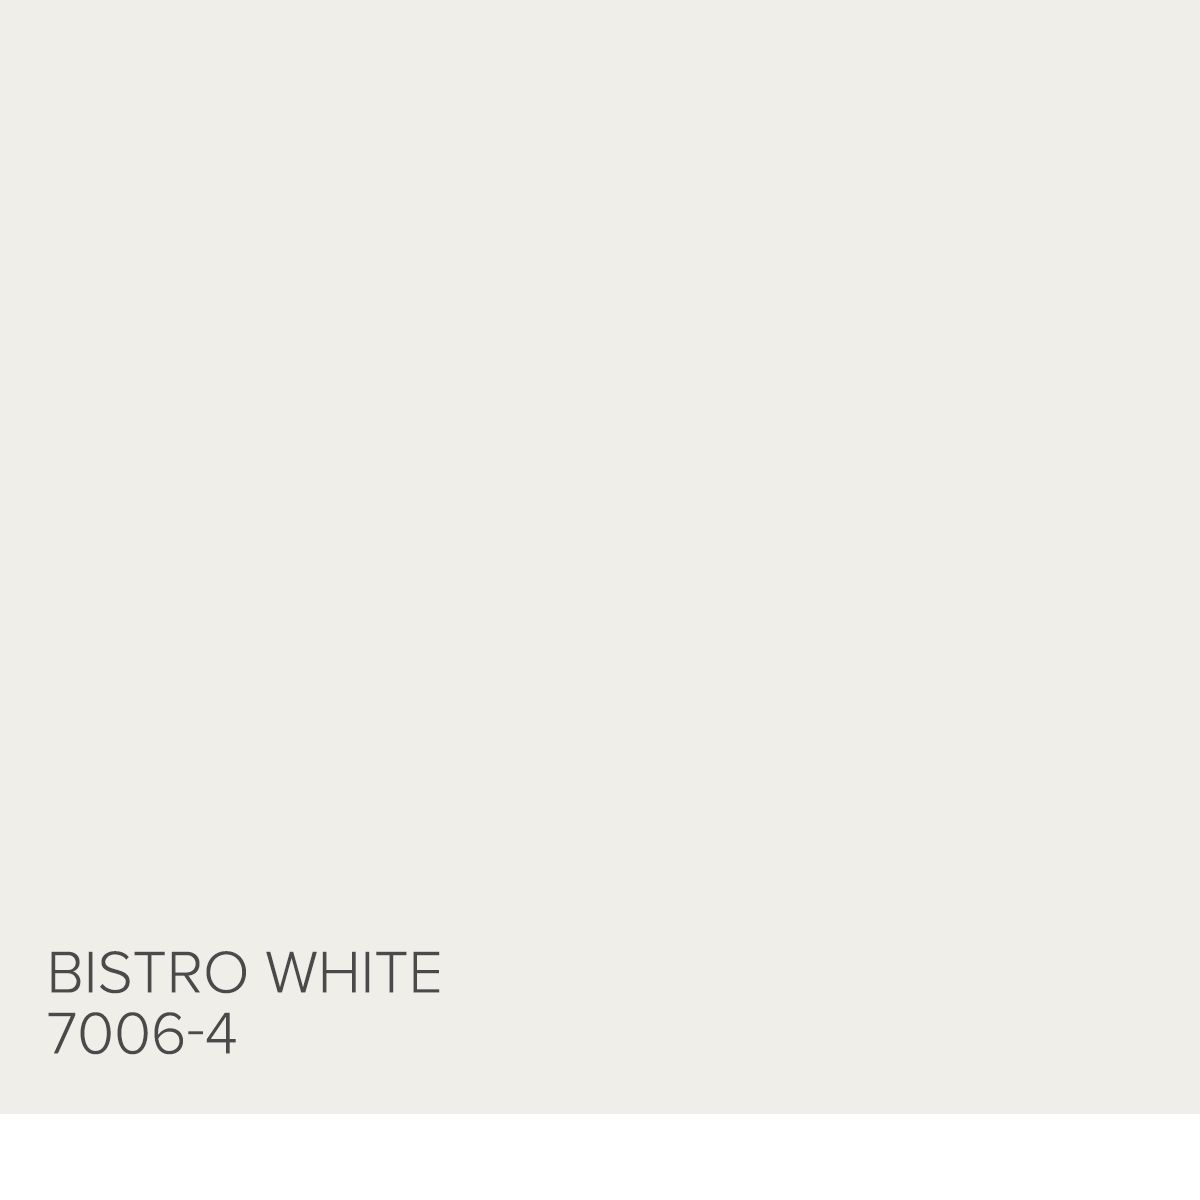 Here S A Tip From Genevieve Gorder Bistro White 7006 4 Is A Bit